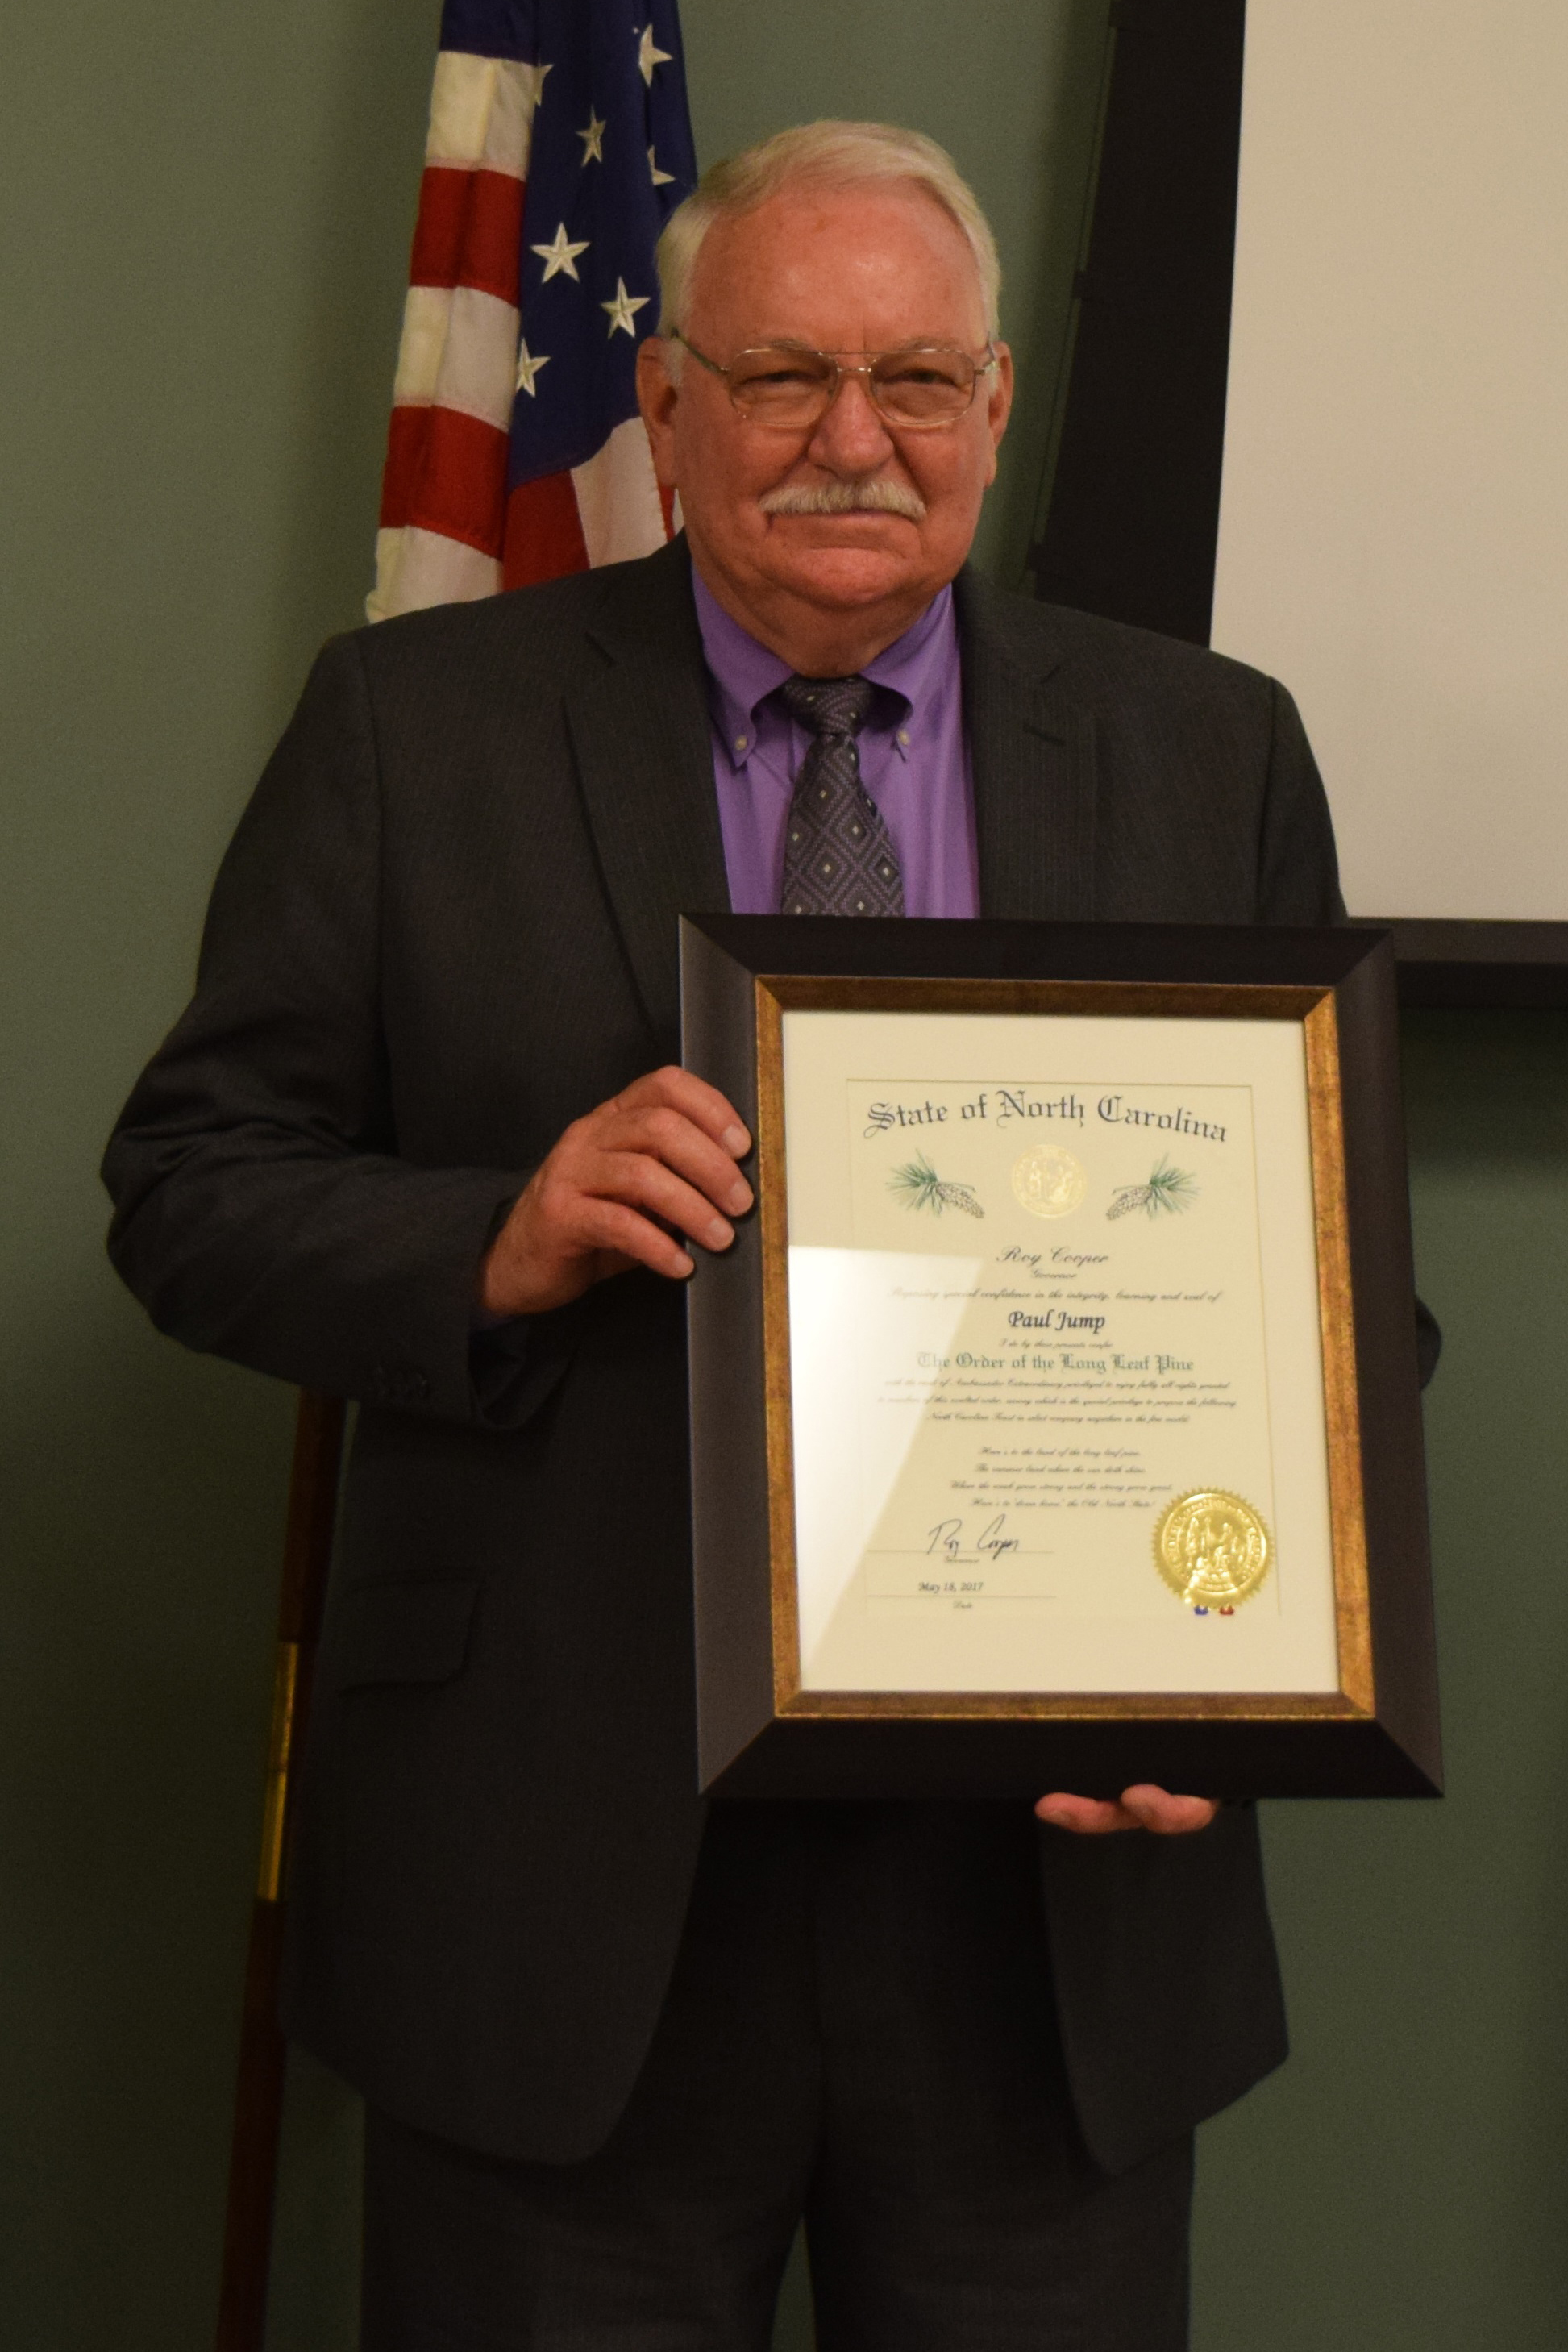 Truck driver training director Paul Jump was presented The Order of the Long Leaf Pine.